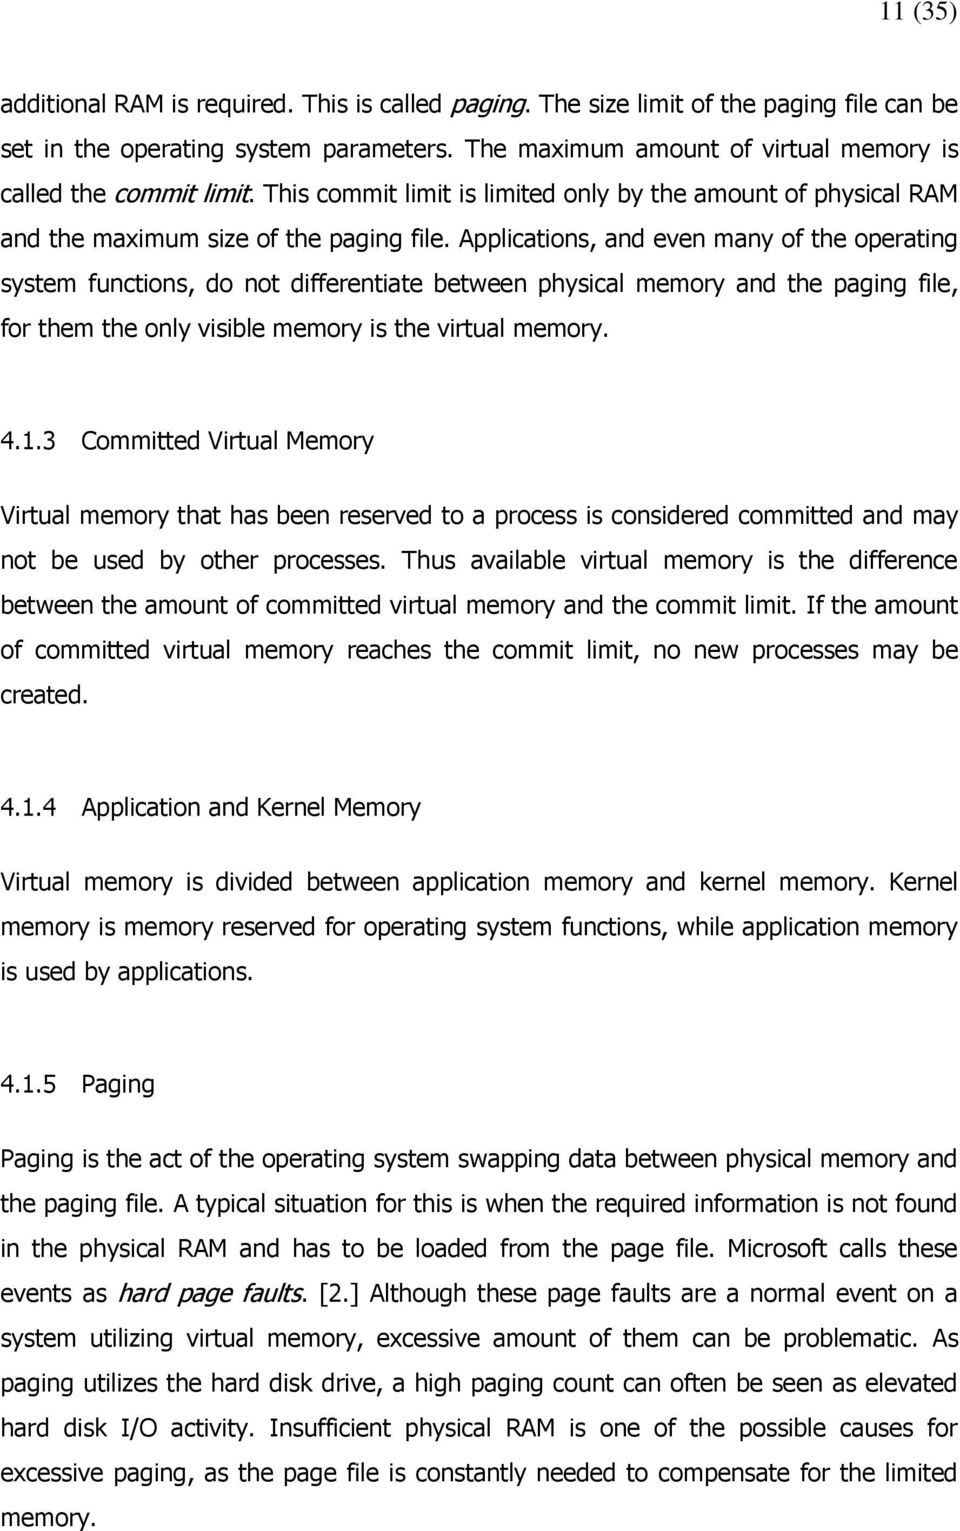 Applications, and even many of the operating system functions, do not differentiate between physical memory and the paging file, for them the only visible memory is the virtual memory. 4.1.